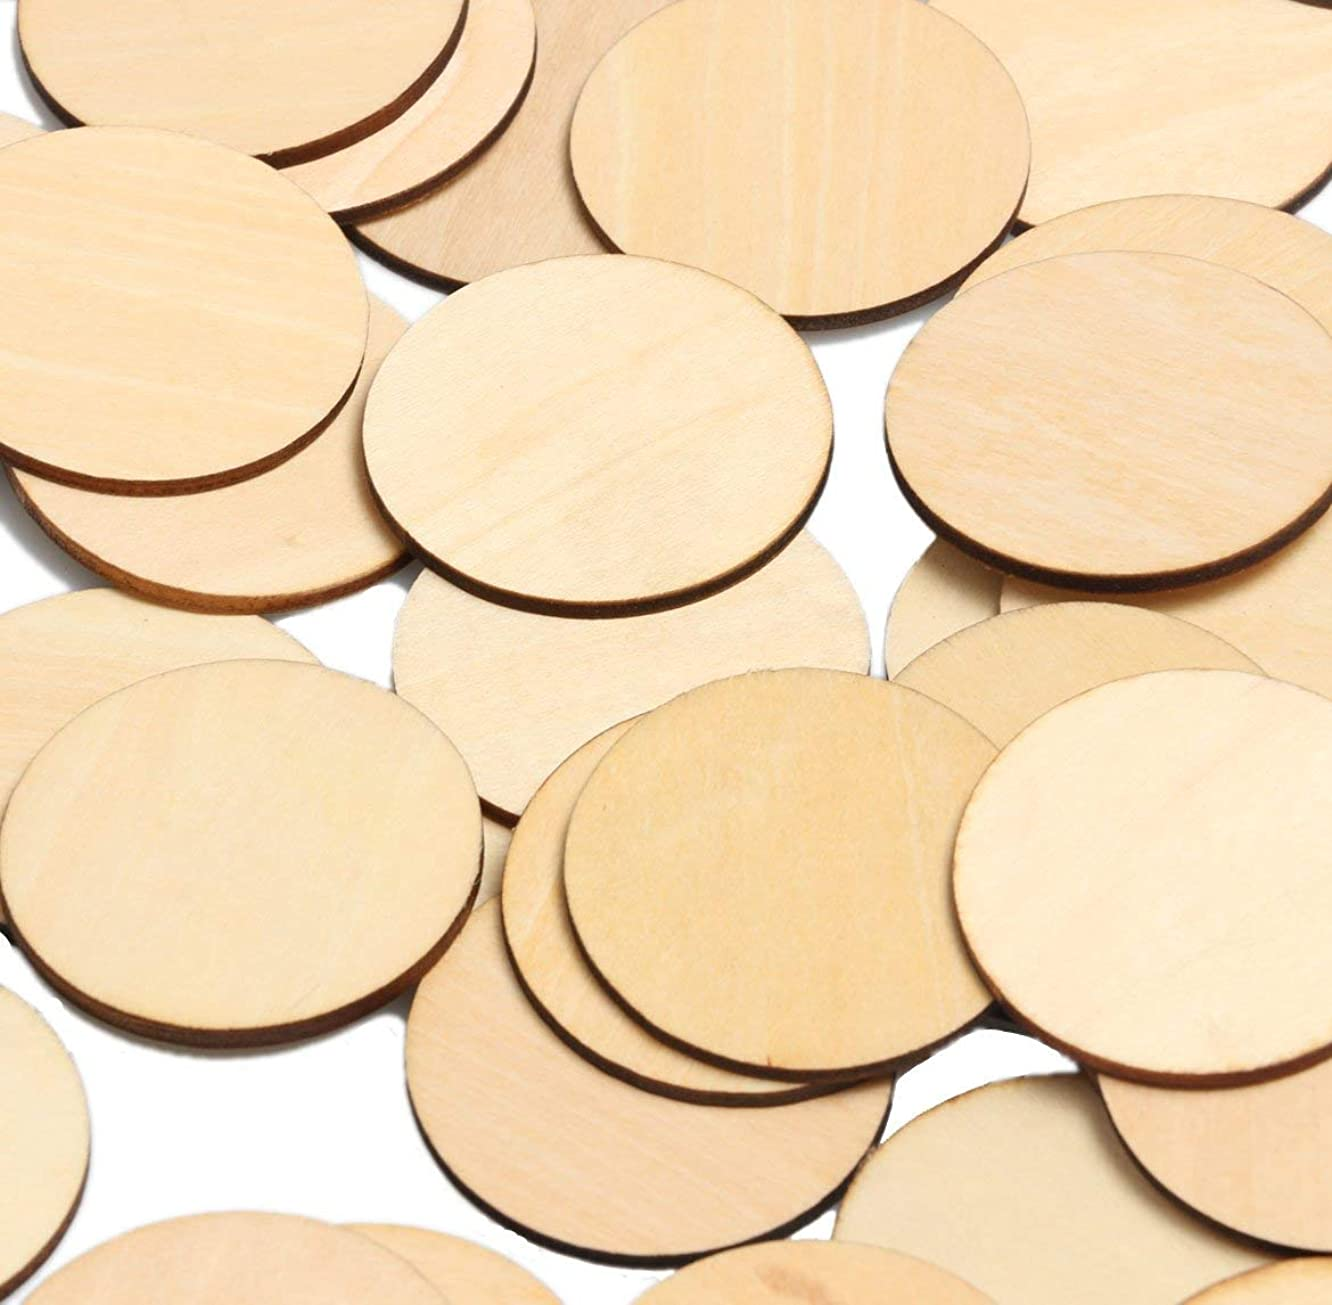 woodeni 2-Inch Unfinished Round Wooden Circles Blank Wood Cutout Slices Discs DIY Crafts(50pcs)